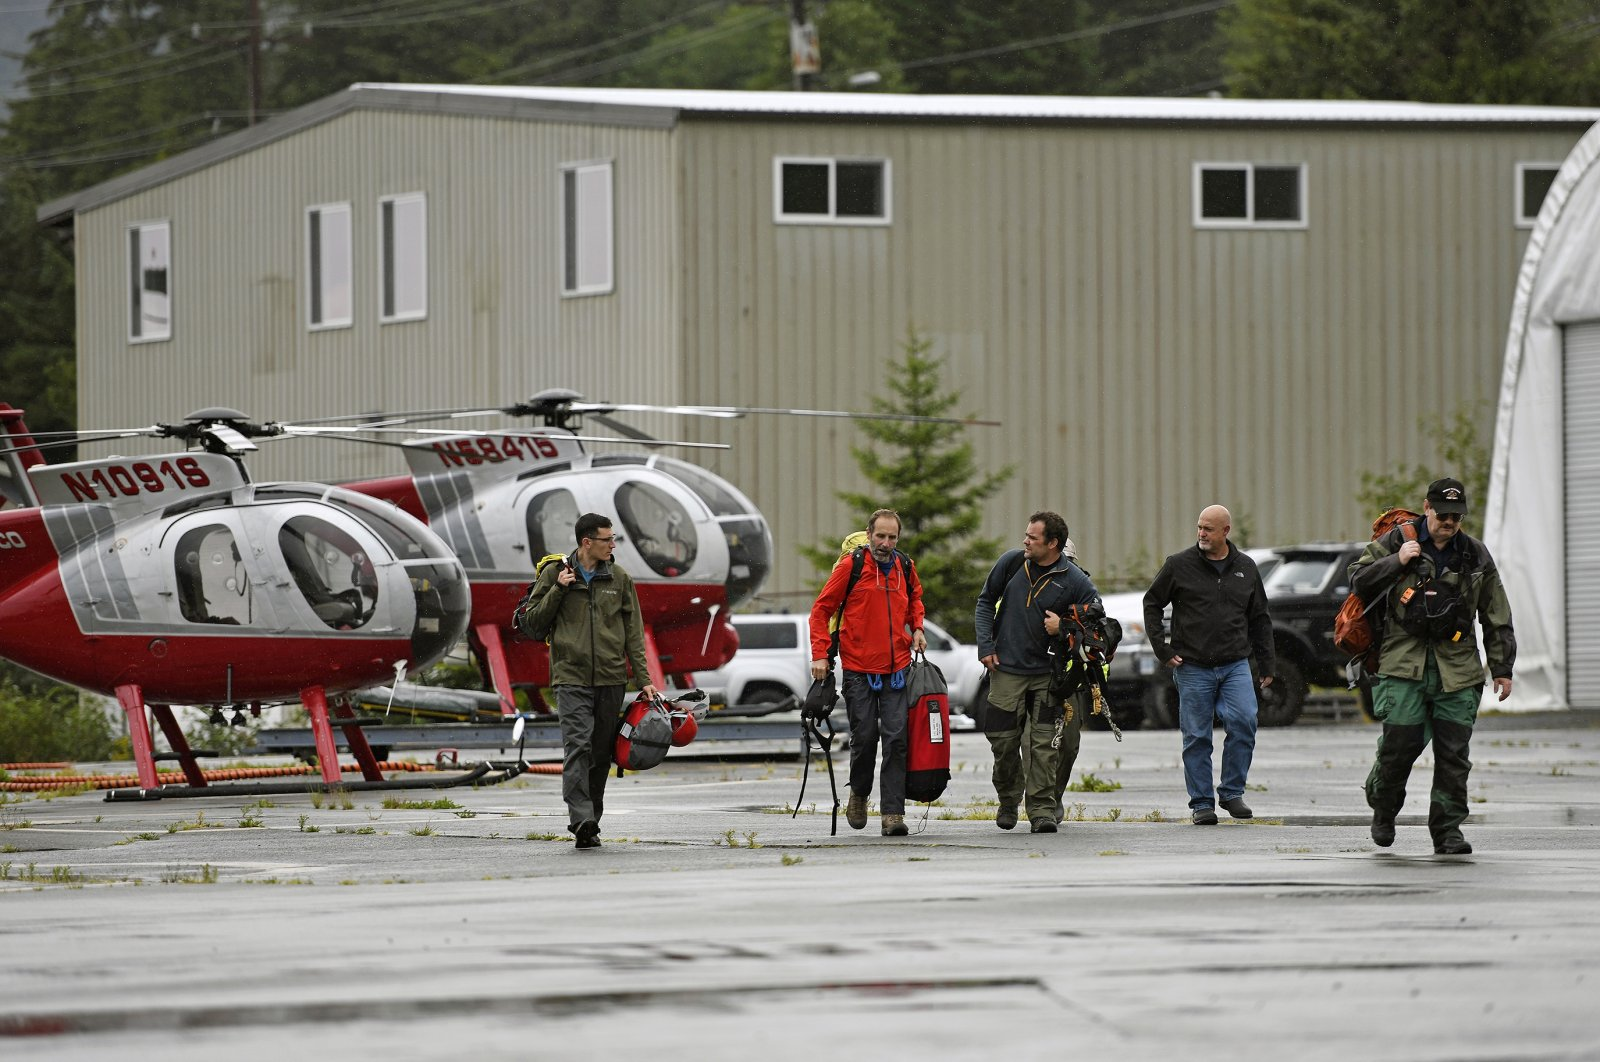 Ketchikan Volunteer Rescue Squad personnel land and disembark from a Hughes 369D helicopter at Temsco Helicopters Inc in Ketchikan, Alaska, Aug. 5, 2021. (AP Photo)